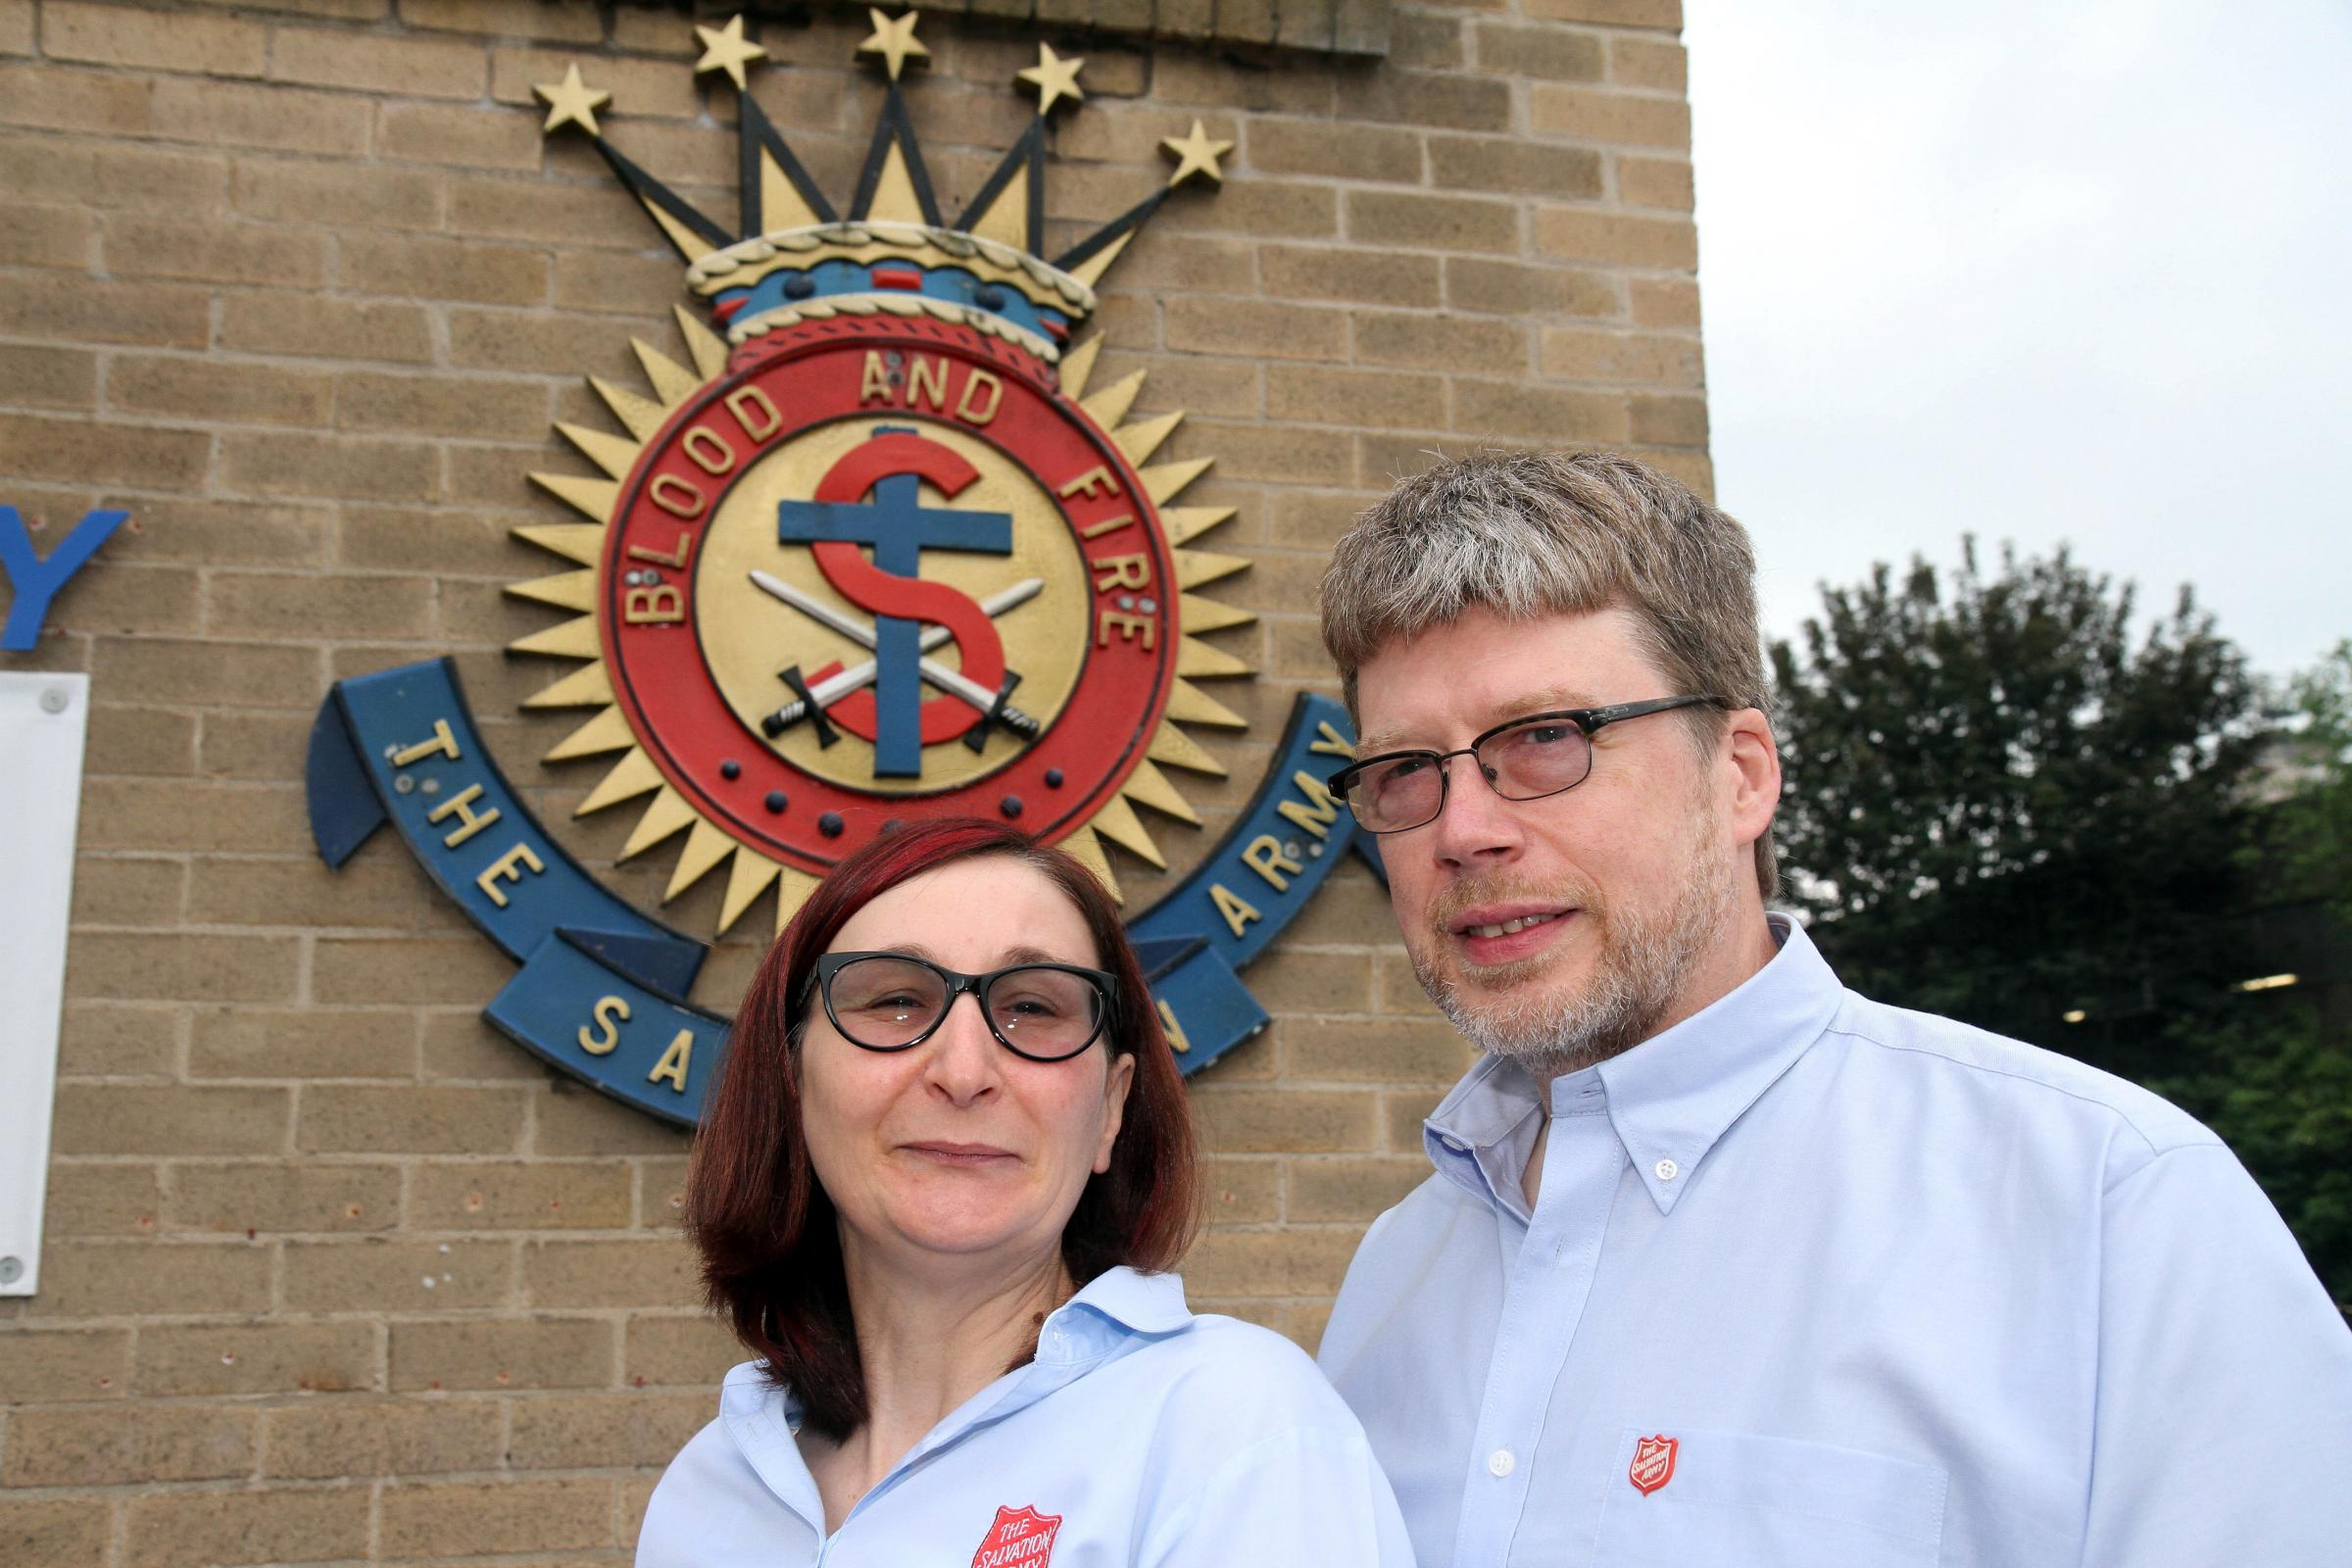 Keighley Salvation Army majors moving on